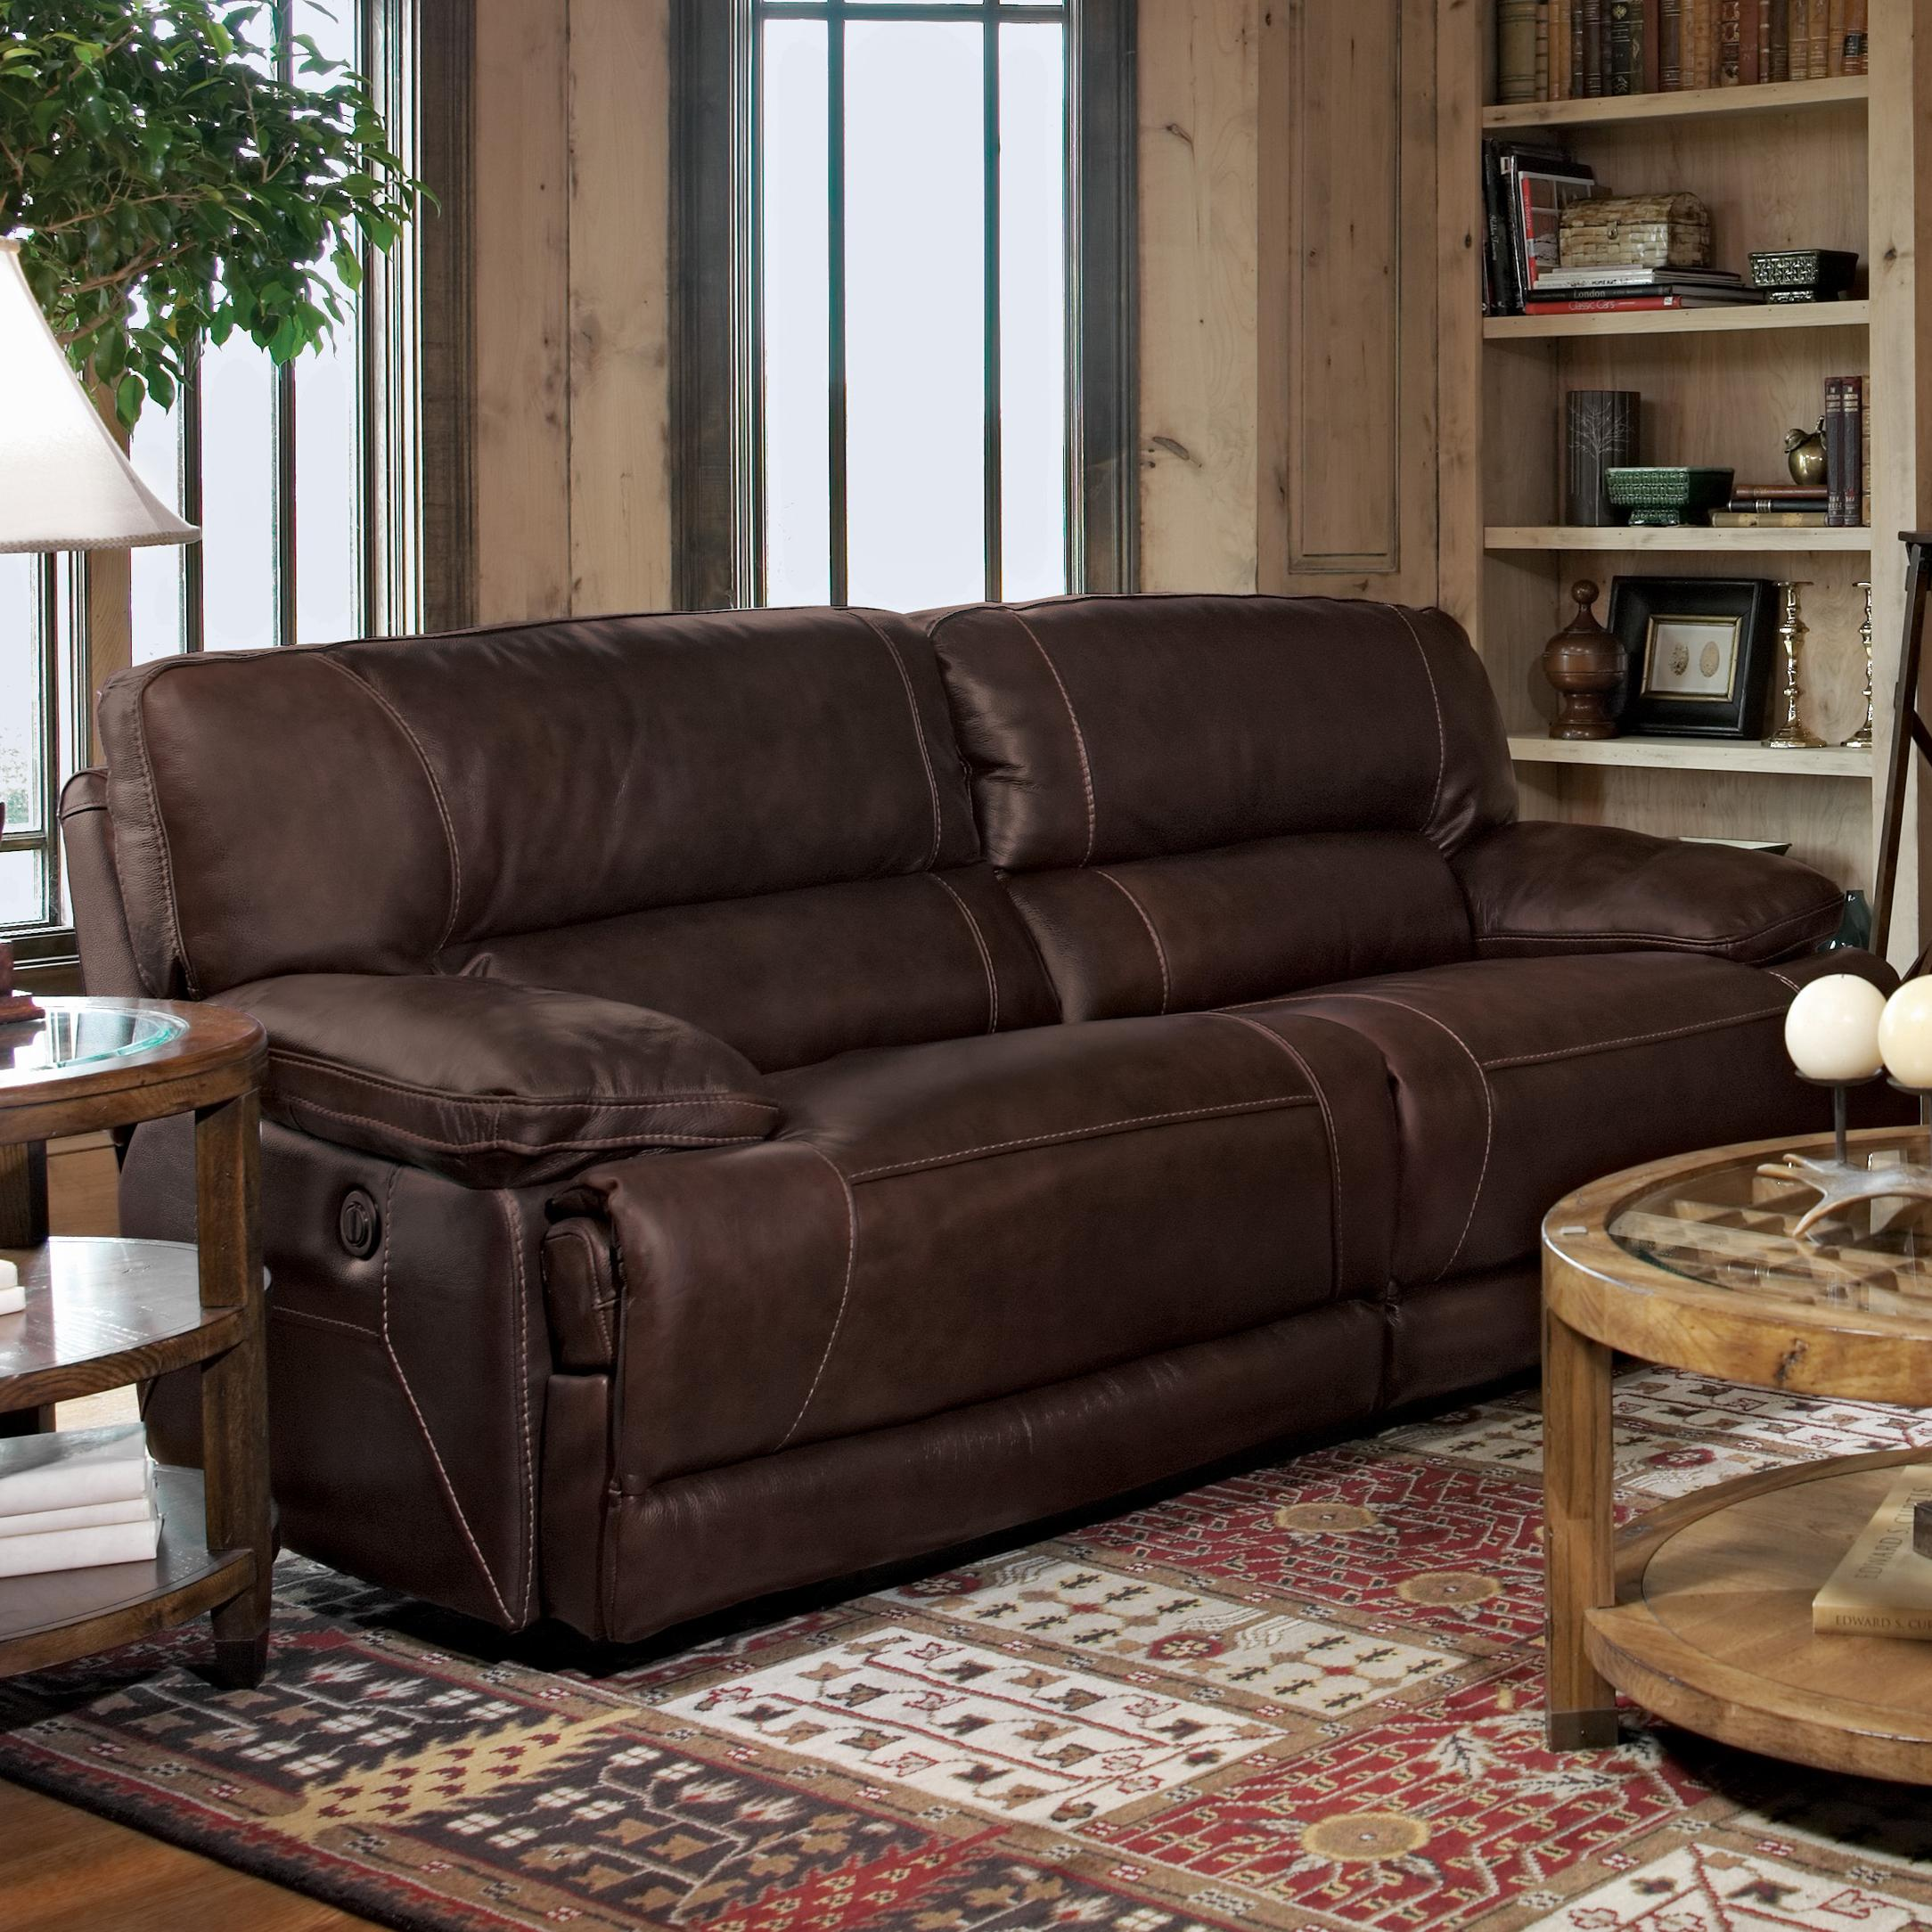 Superieur Flexsteel Latitudes   Fleet Street Power Reclining Sofa   Item Number:  1237 62P